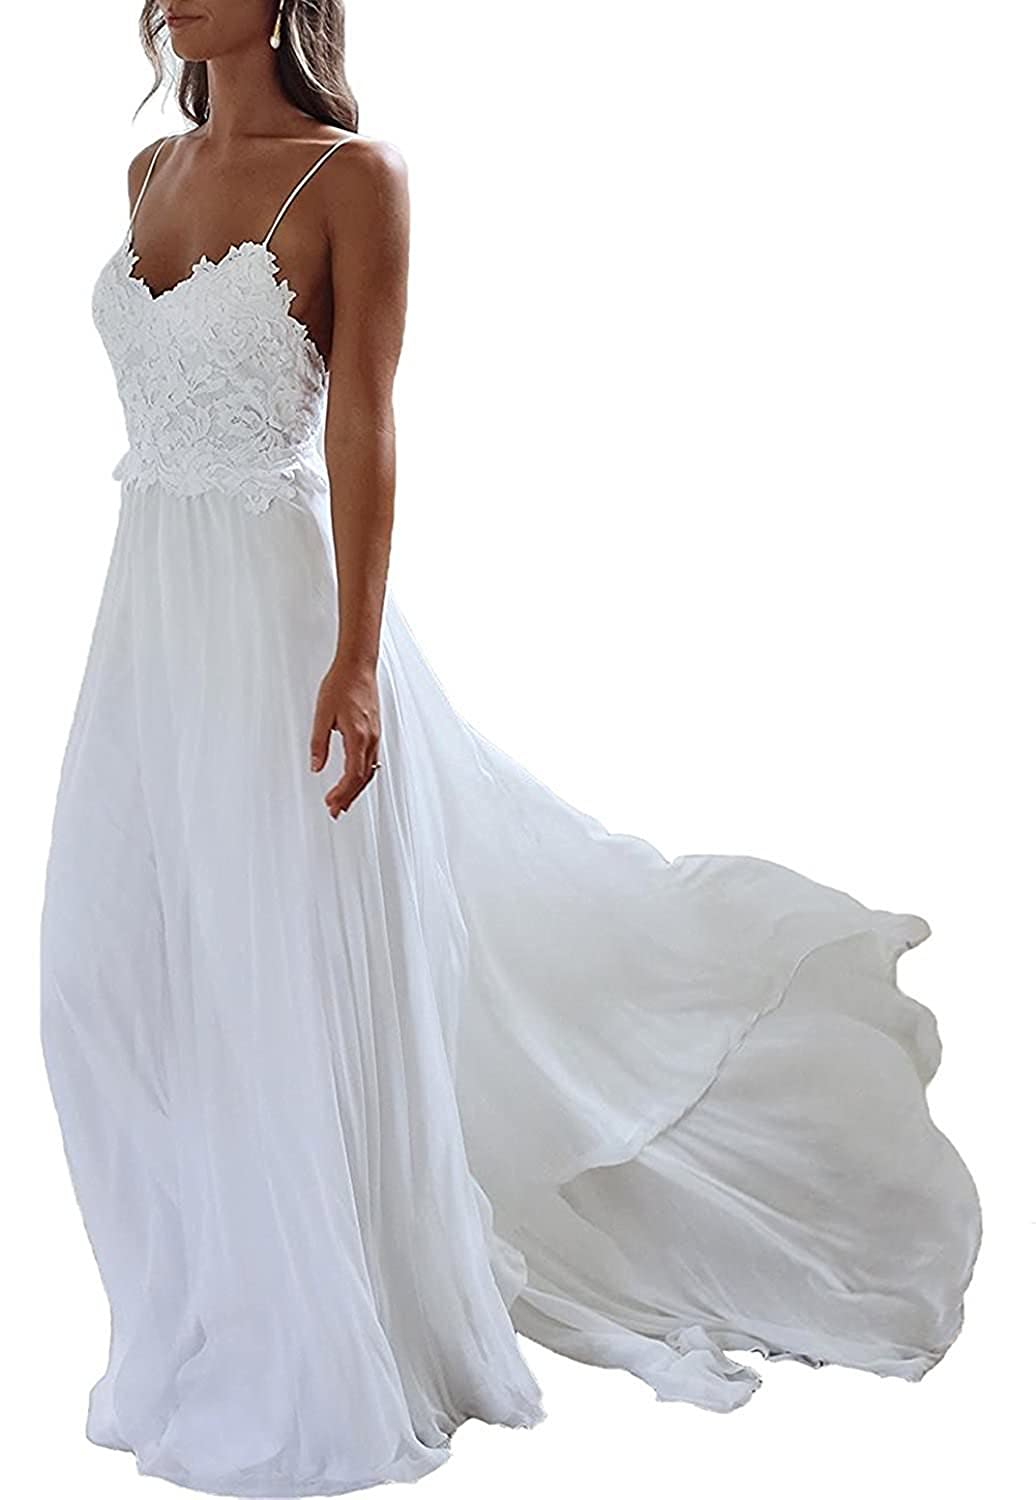 Strapless Wedding Dresses For Bride Lace Ruffled Long Beach Wedding Dress Special Bridal WD025